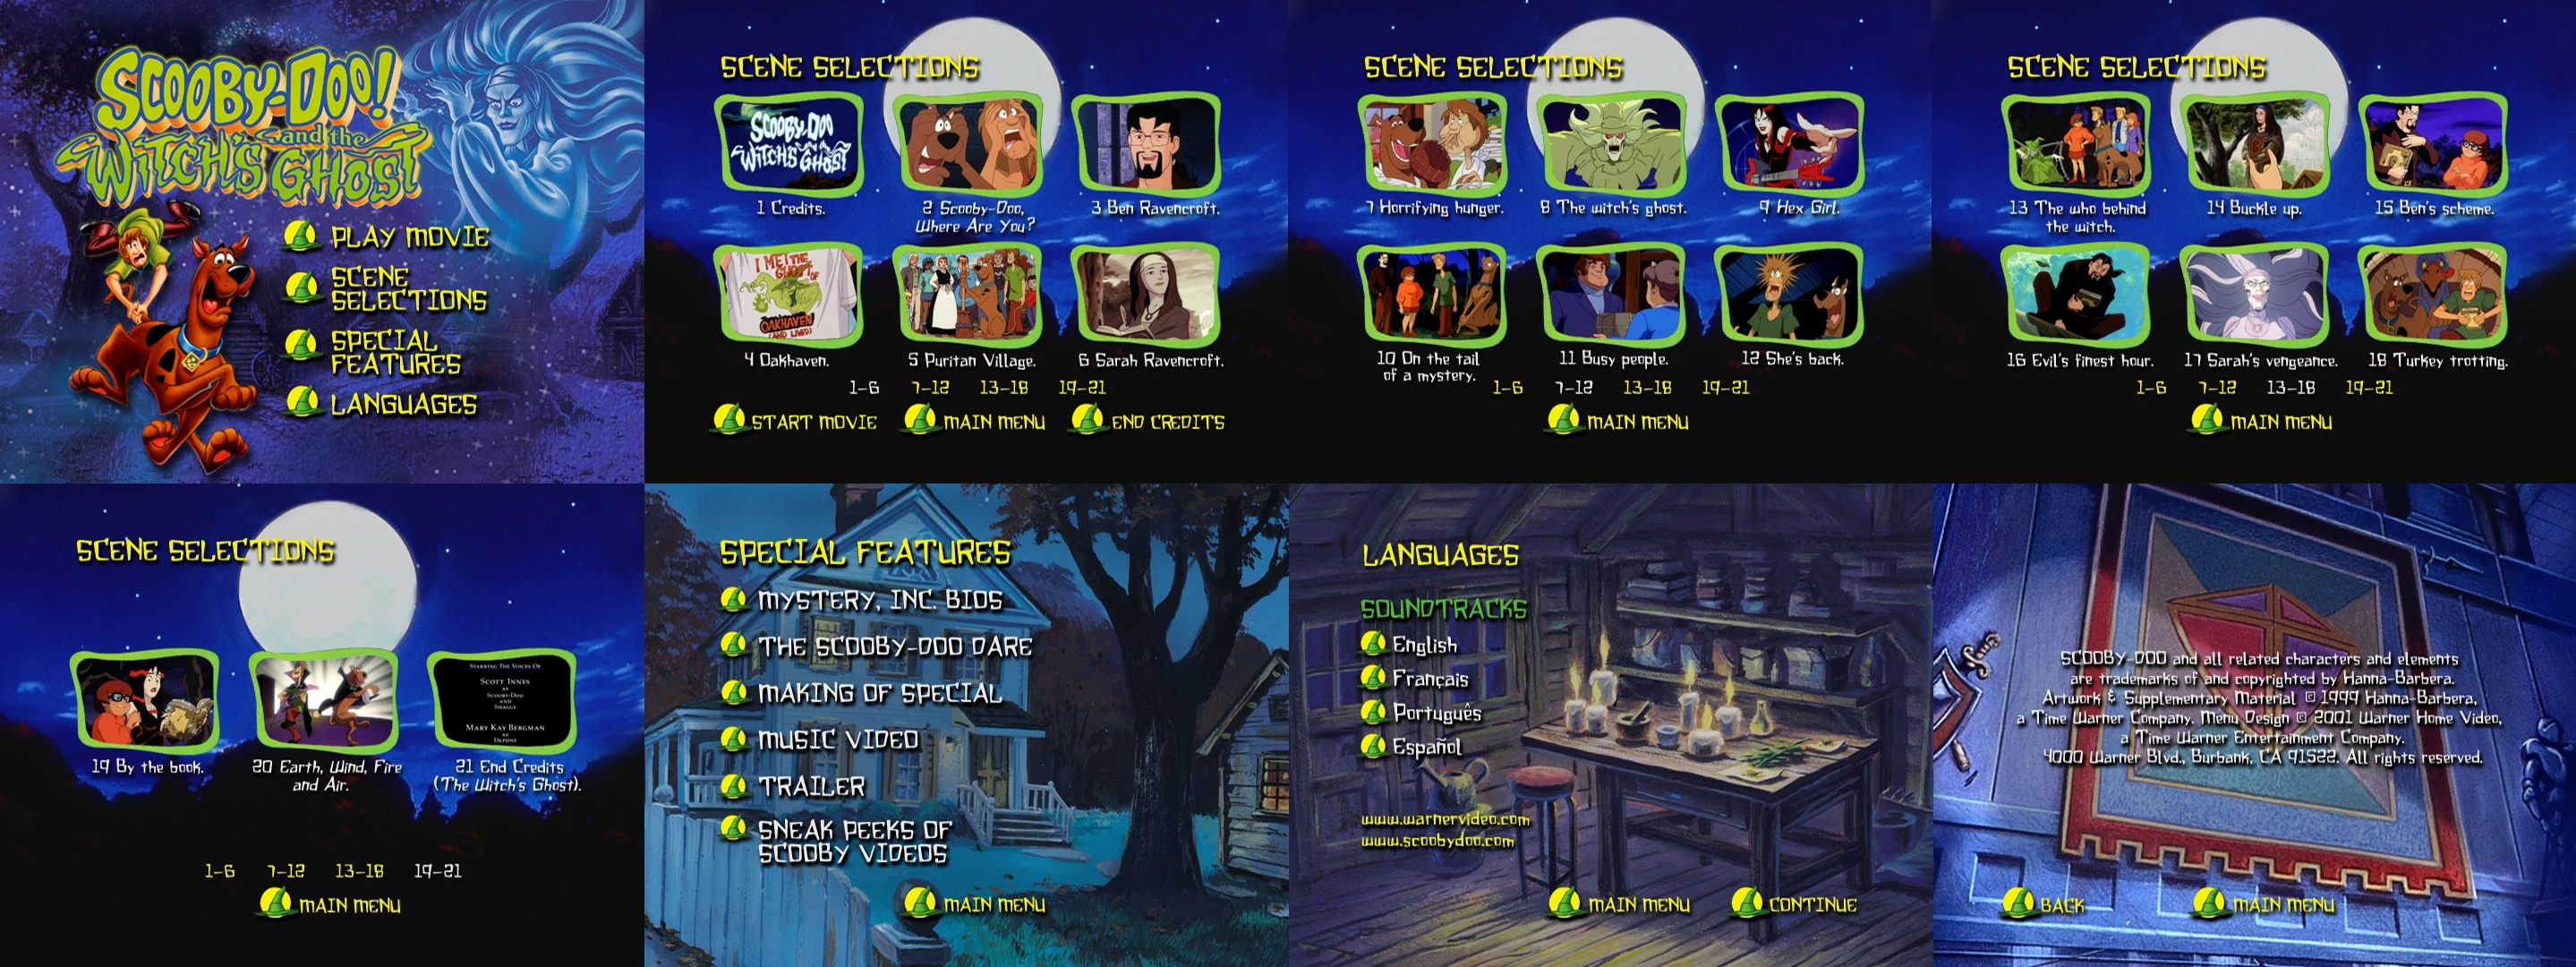 Scooby Doo And The Witches Ghost Dvd Menus By Dakotaatokad On Deviantart